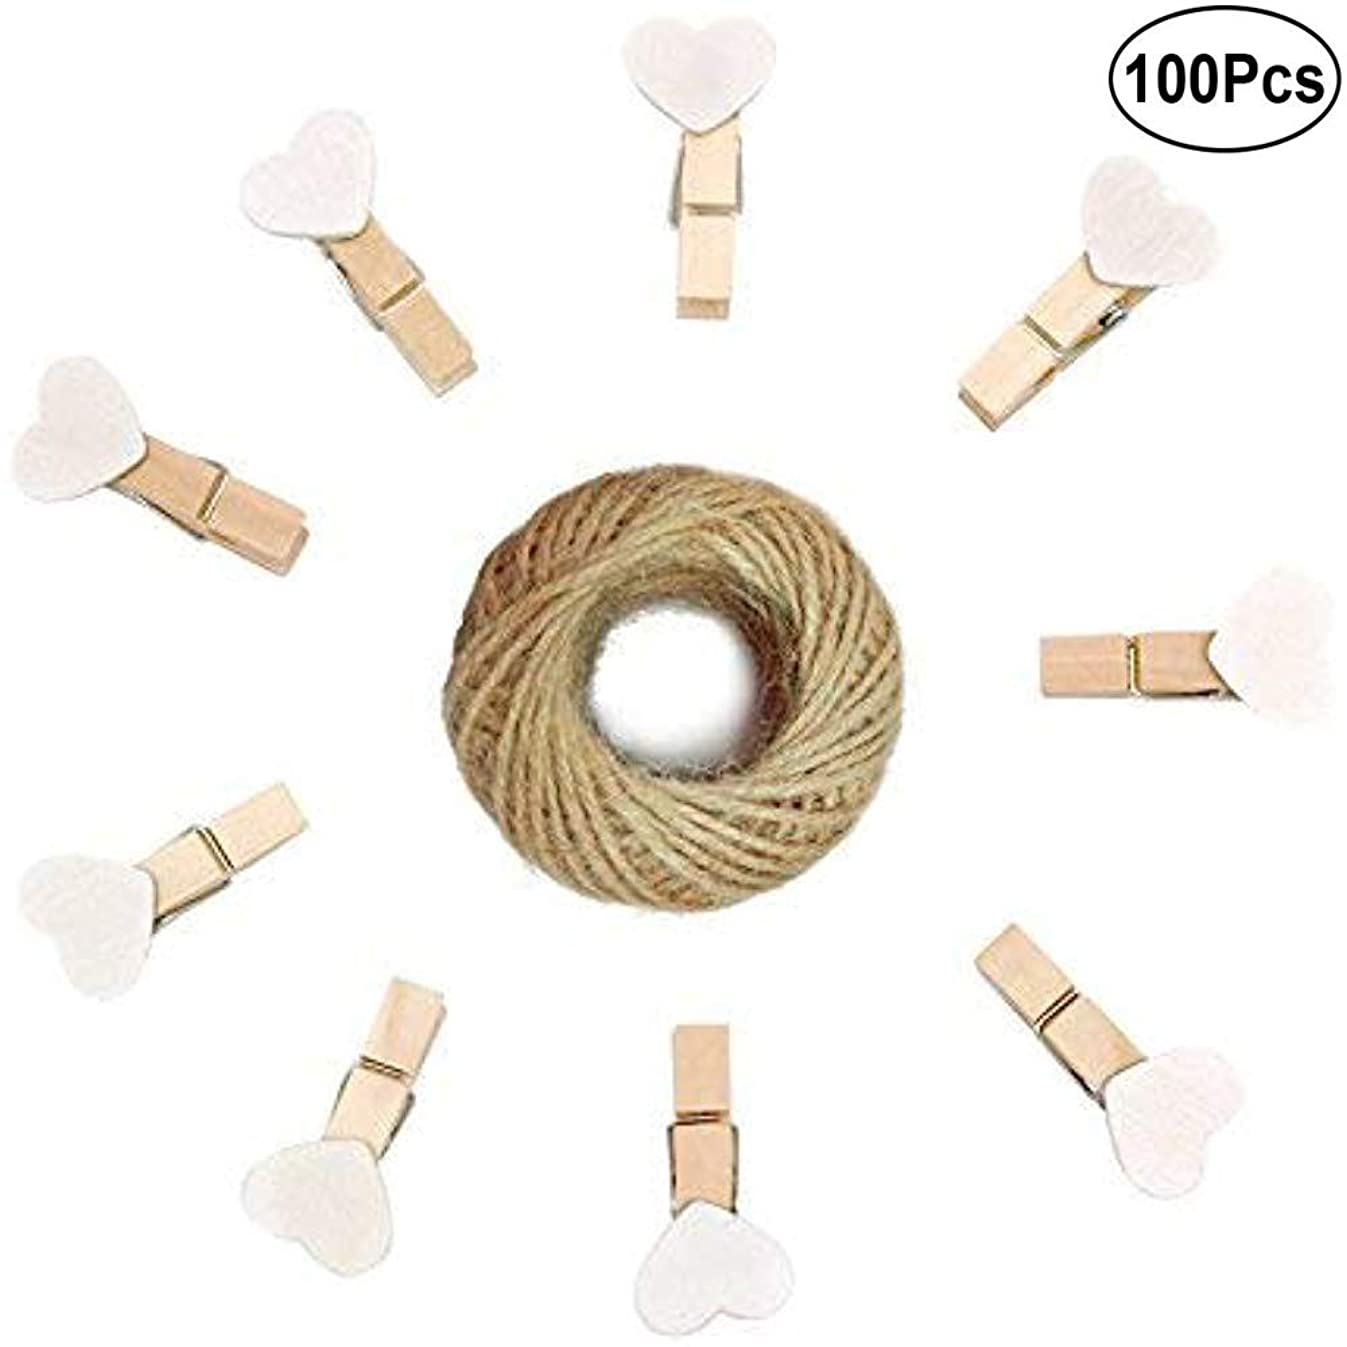 Free Walker 100 PCs Wooden Heart Clothespins 3.5cm with 10m Rope,Photo Paper Peg Craft Clips Wedding Note Hanging Hooks (100xWhite)